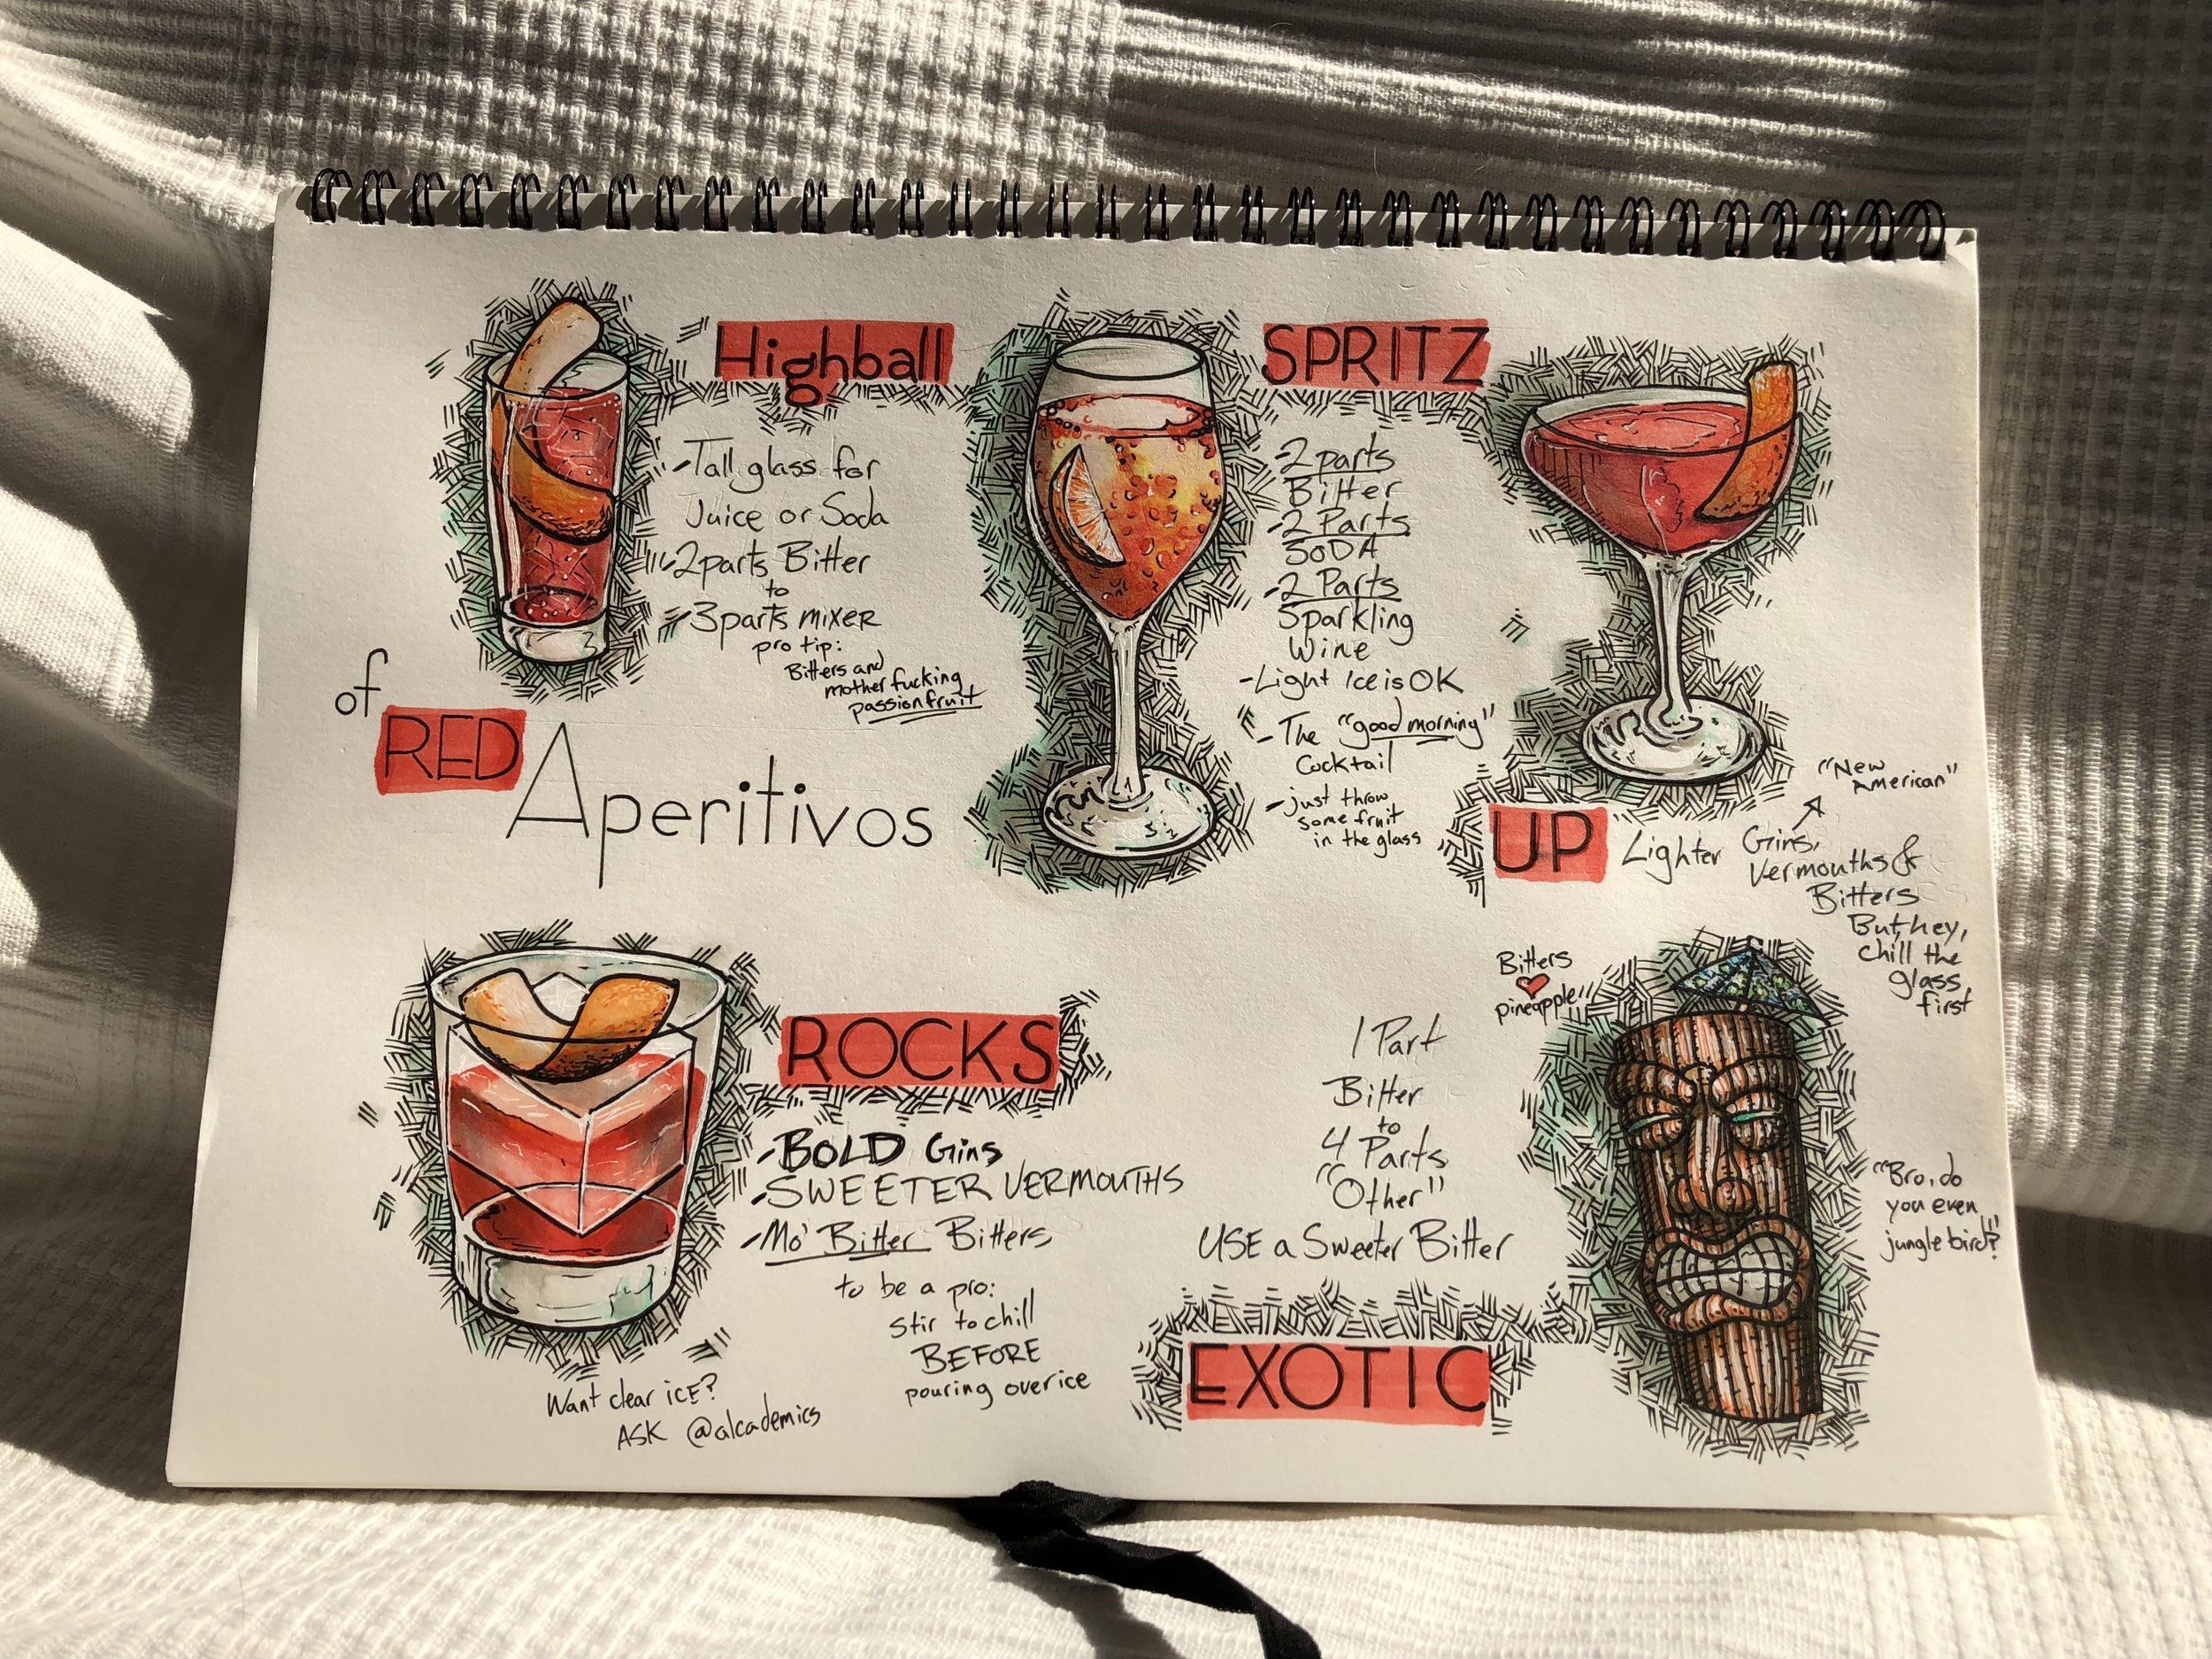 simple templates and tips of aperitivos (aperitivi) highballs, spritzes, Negroni-style and bitters/ aperitvo/ amaro spiced exotic cocktails